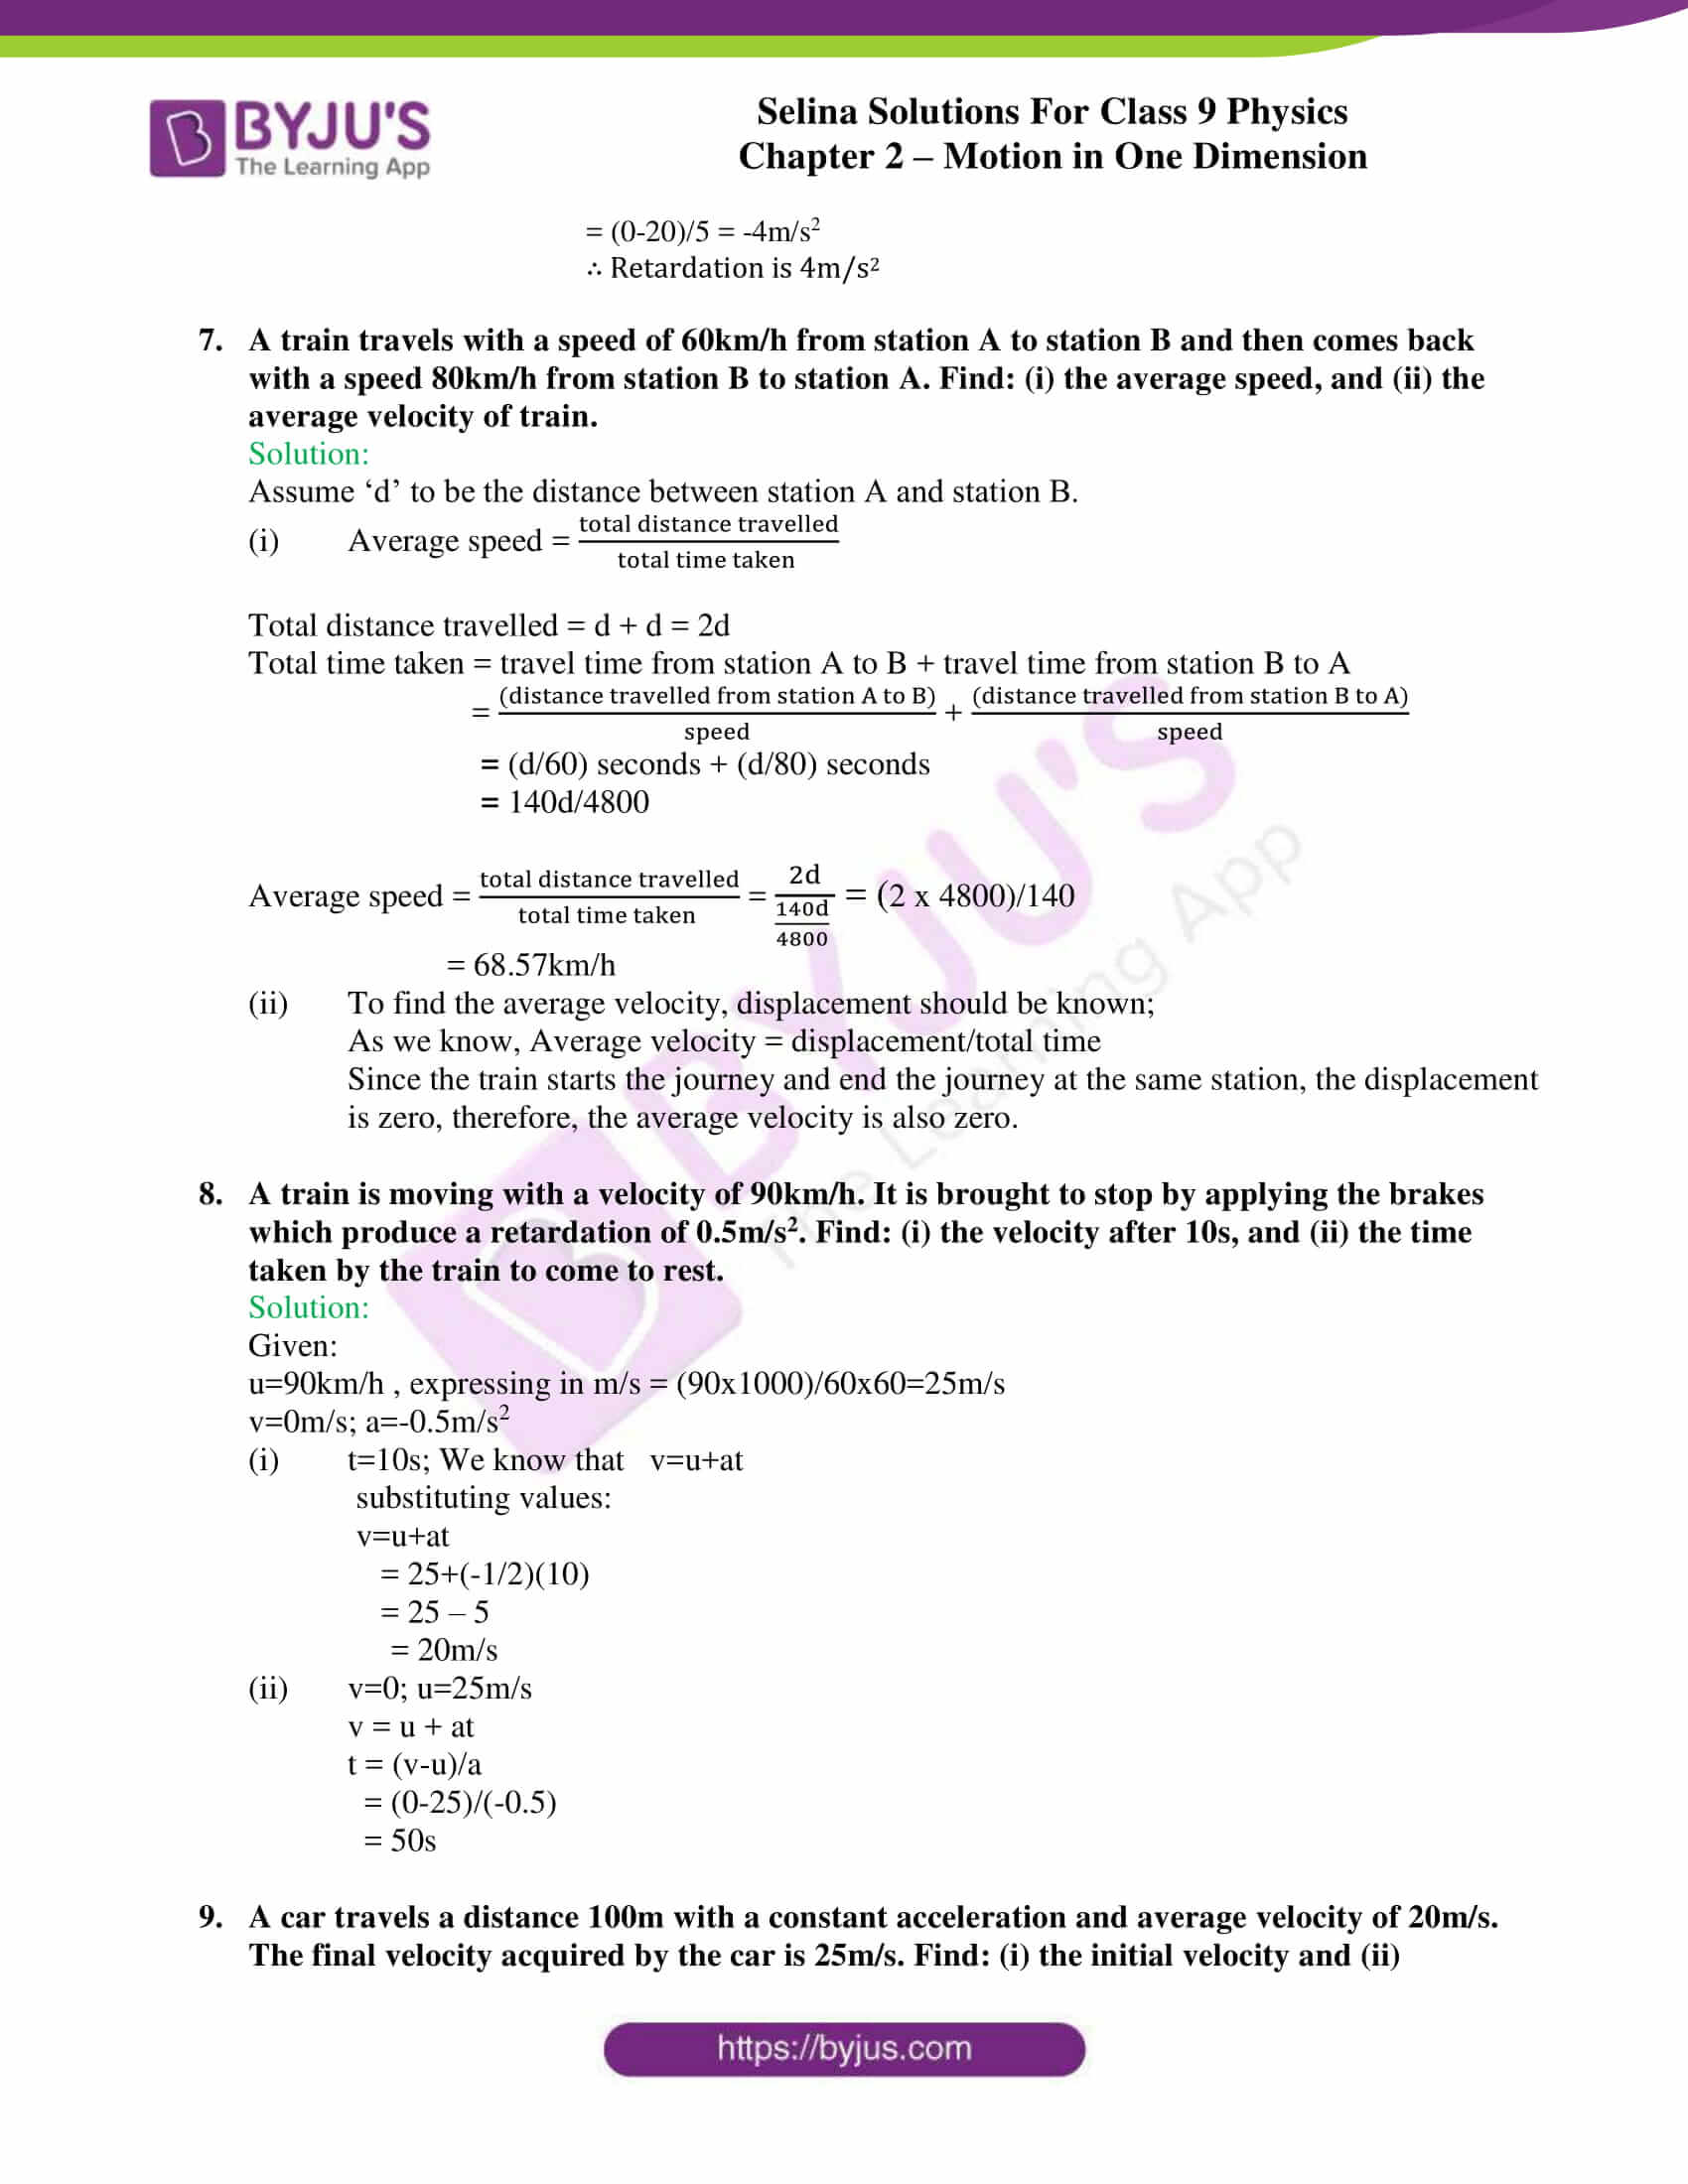 selina solutions class 9 physics chapter 2 Motion in One Dimension part 35